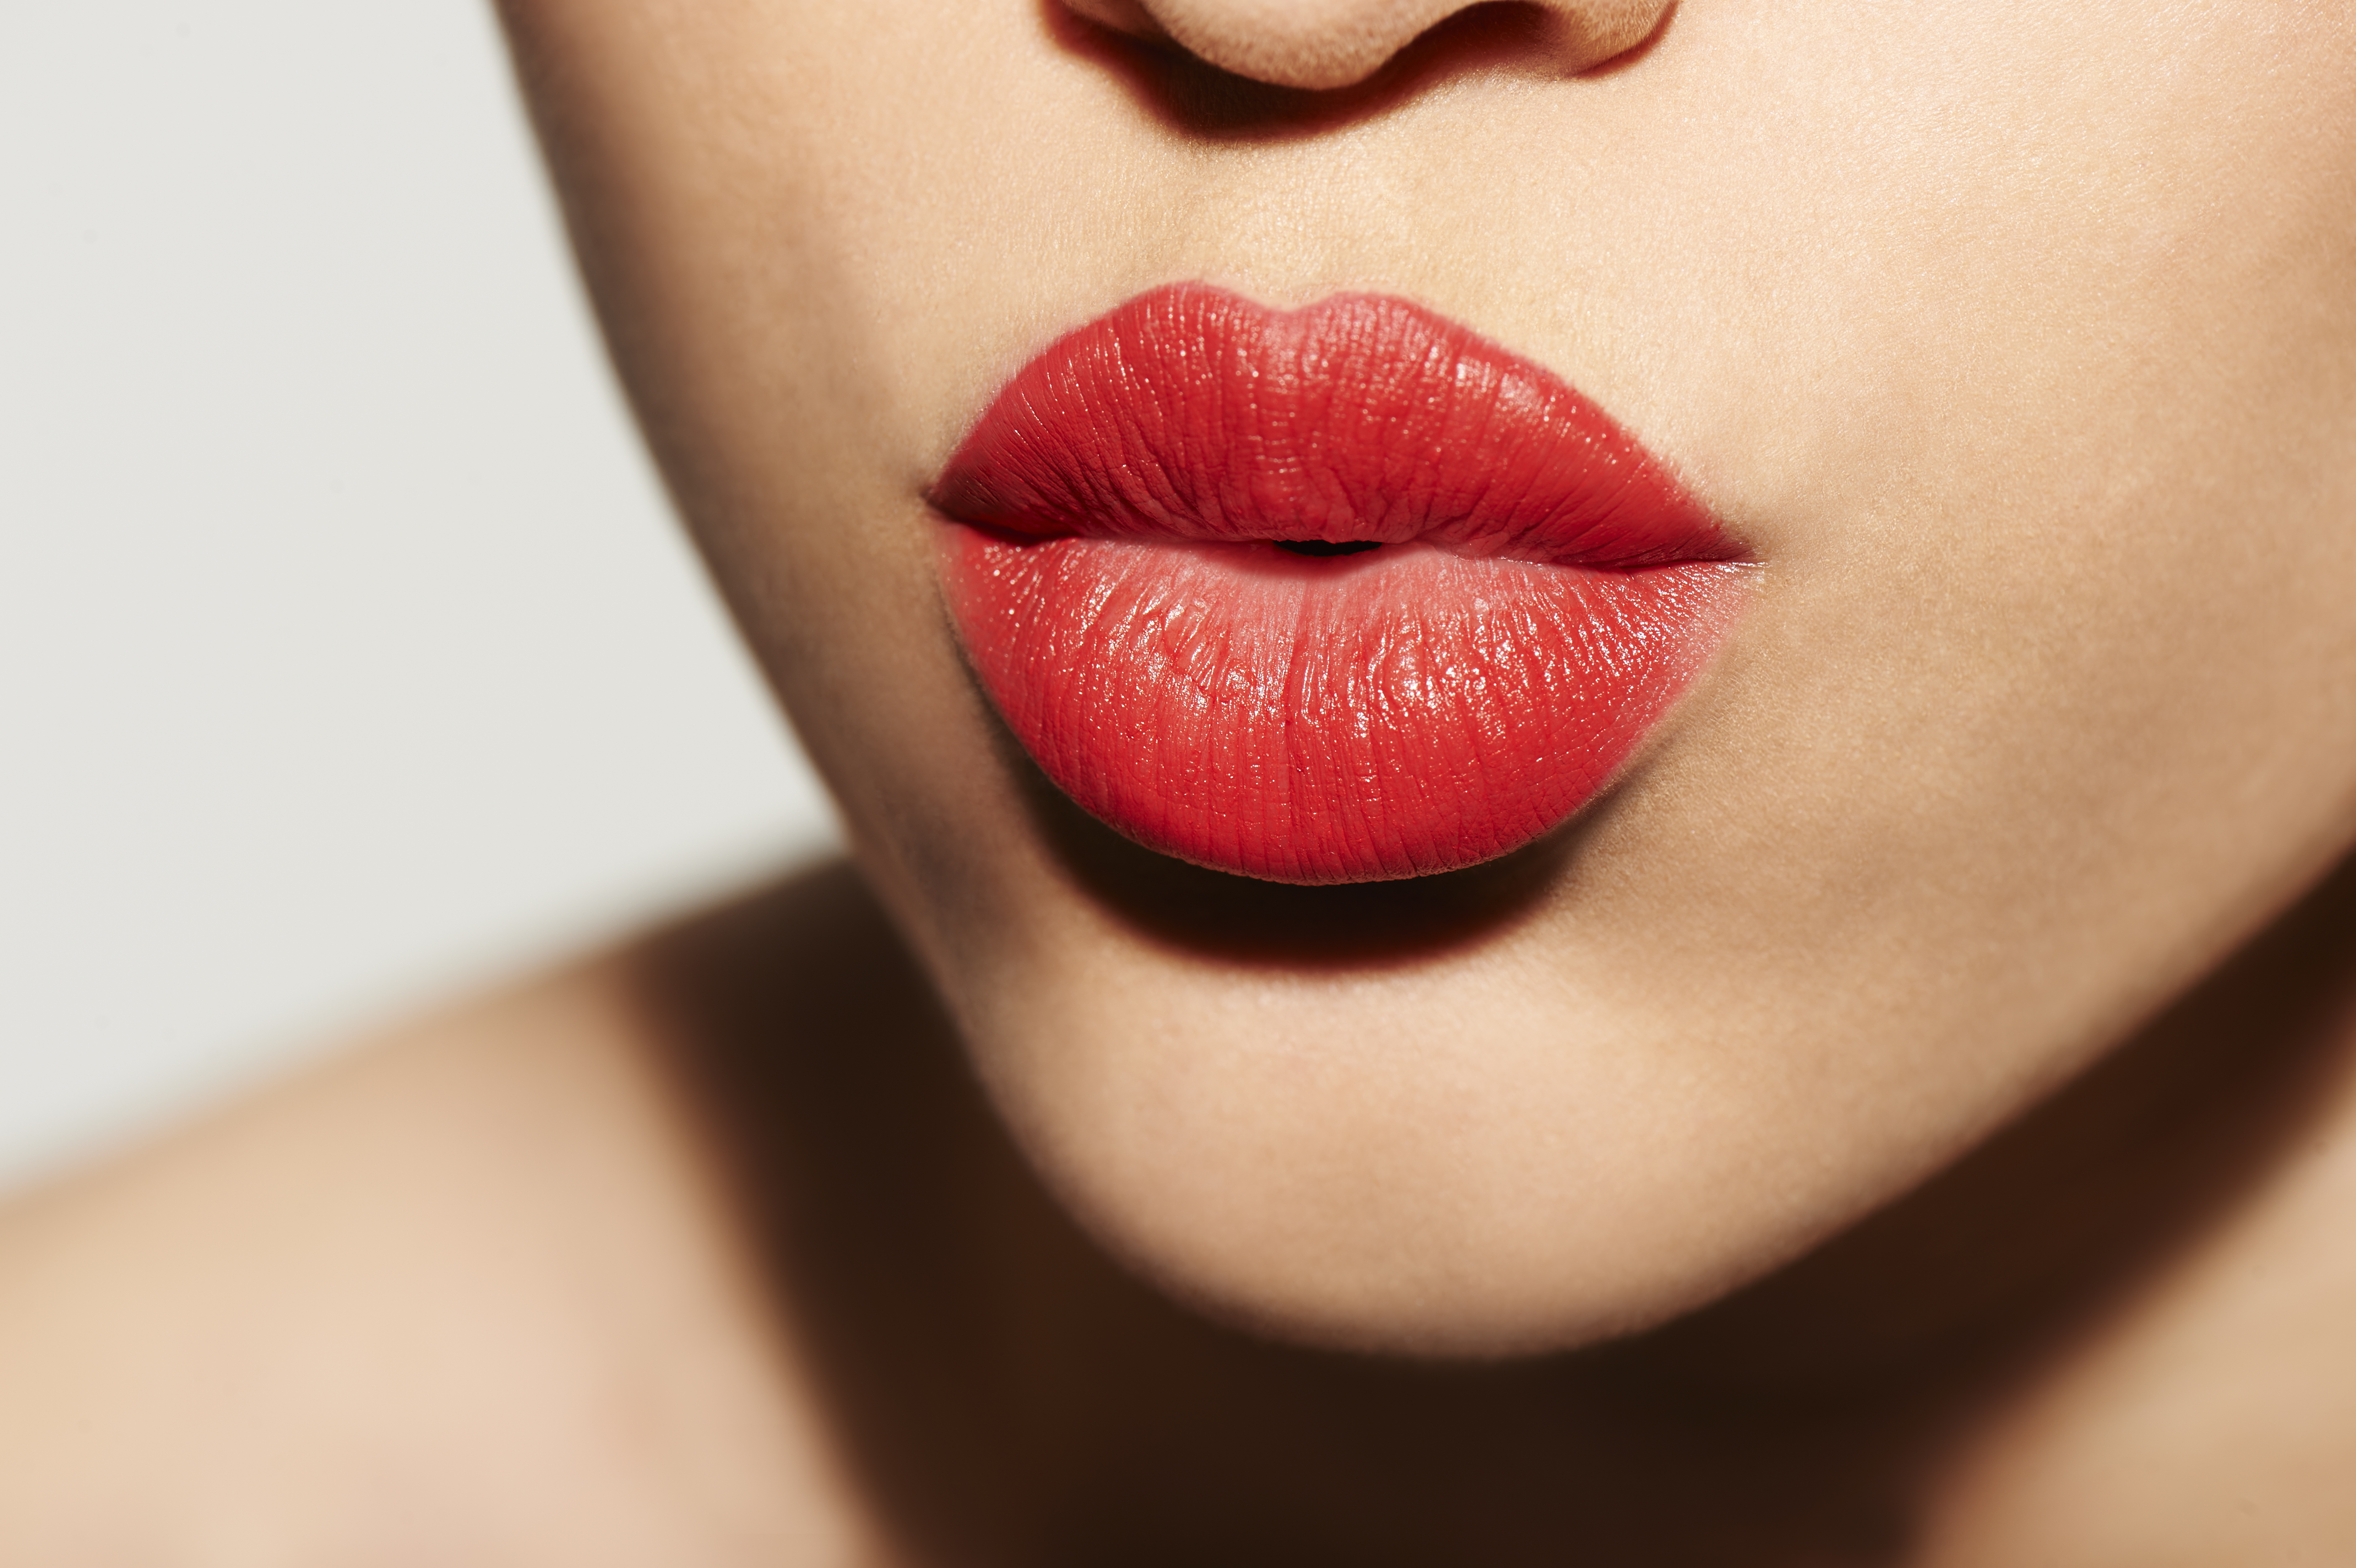 One of these 10 red lipsticks is likely a match for your perfect pout